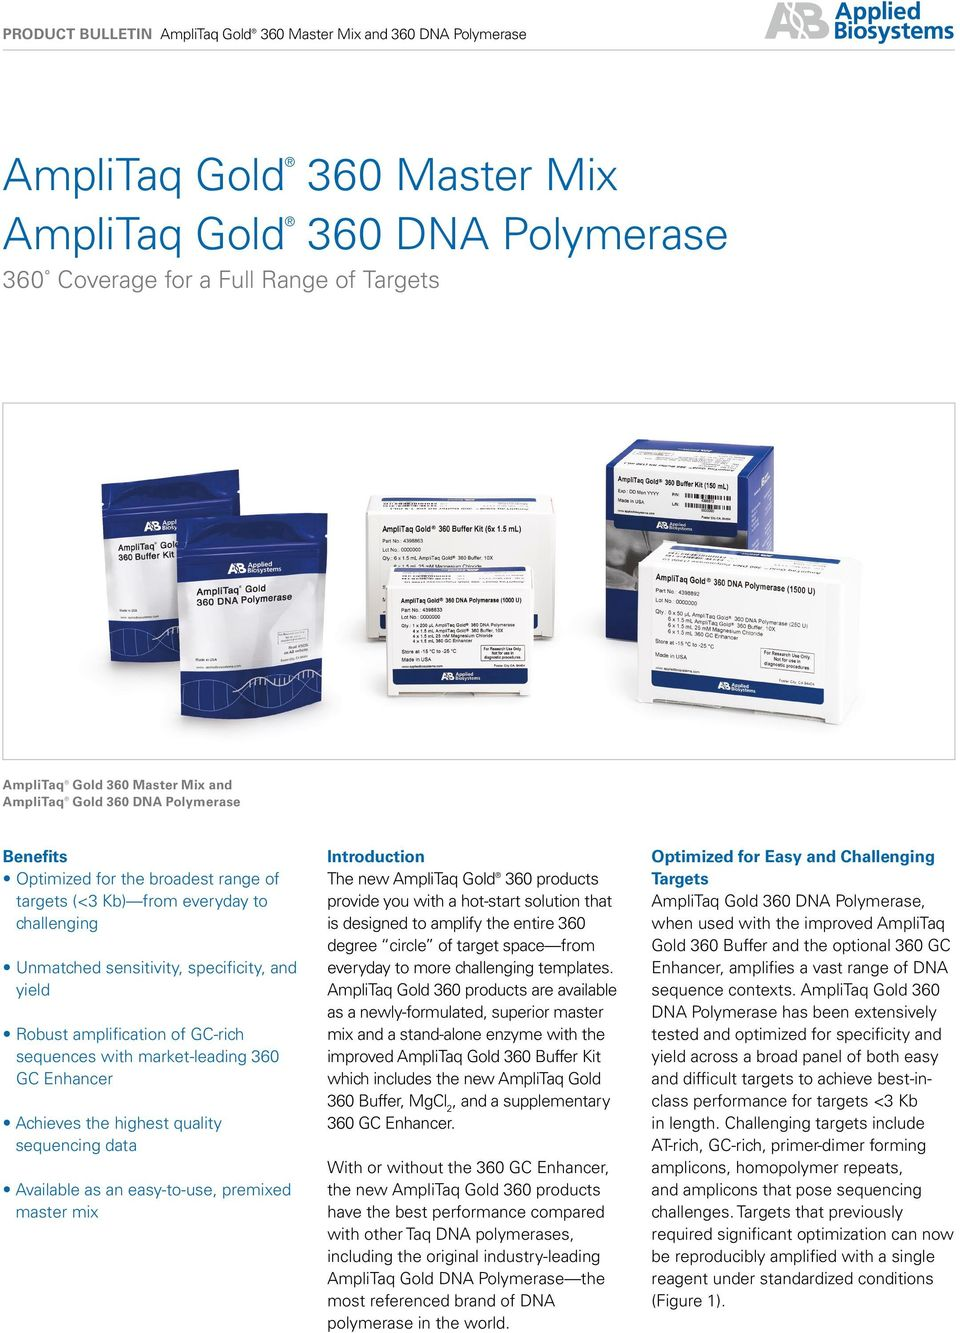 of GC-rich sequences with market-leading 360 GC Enhancer Achieves the highest quality sequencing data Available as an easy-to-use, premixed master mix Introduction The new AmpliTaq Gold 360 products